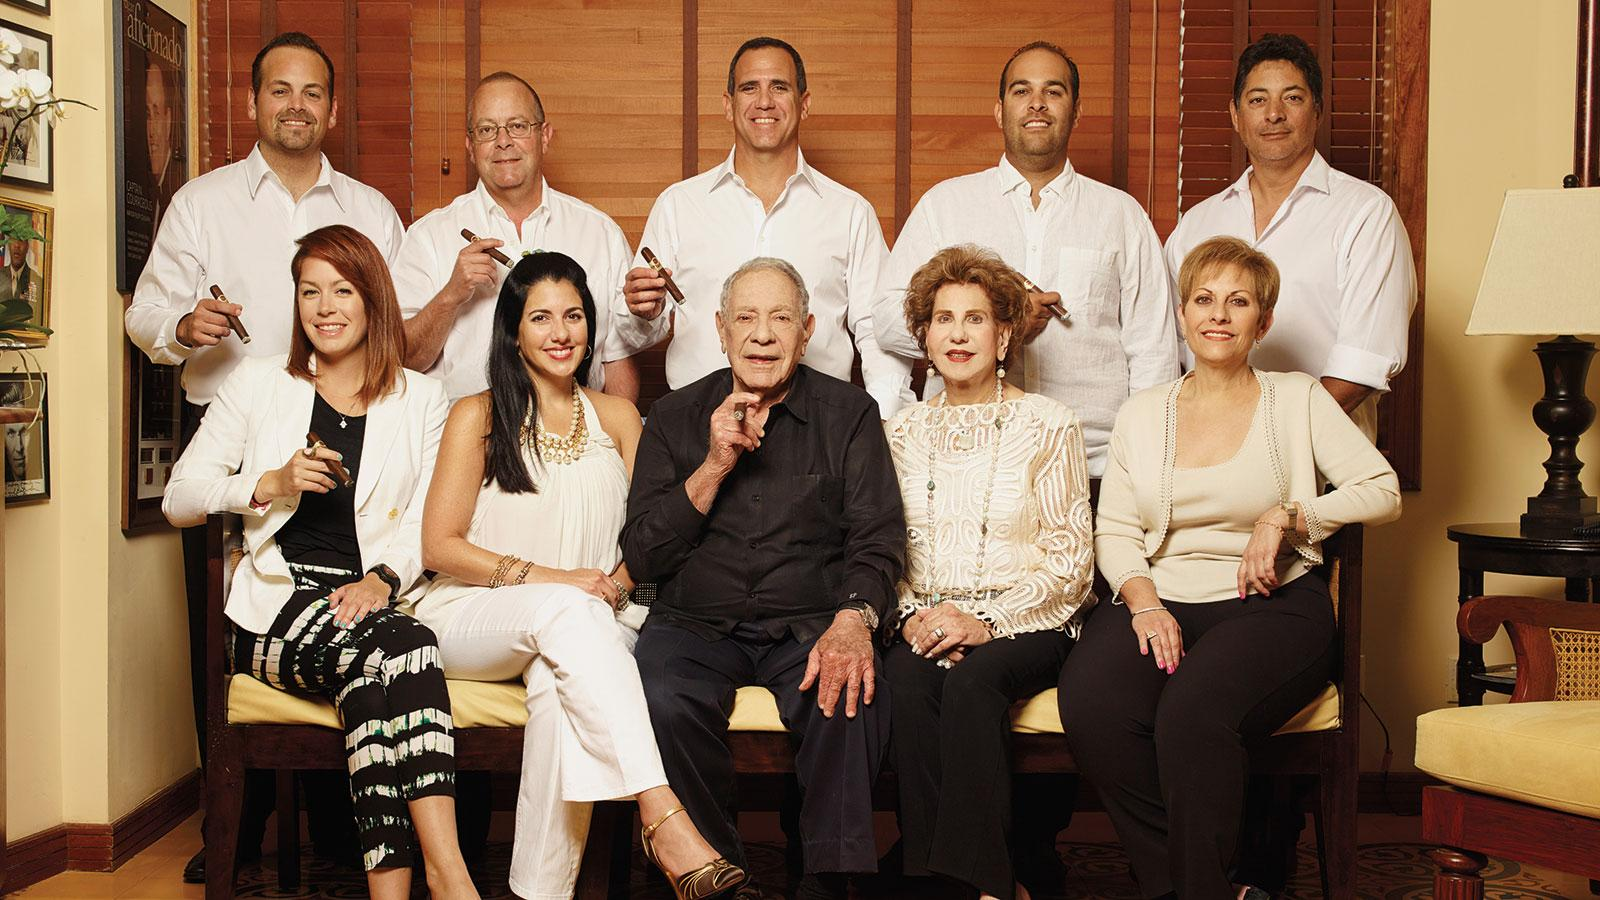 Padrón in 2014, surrounded by family.